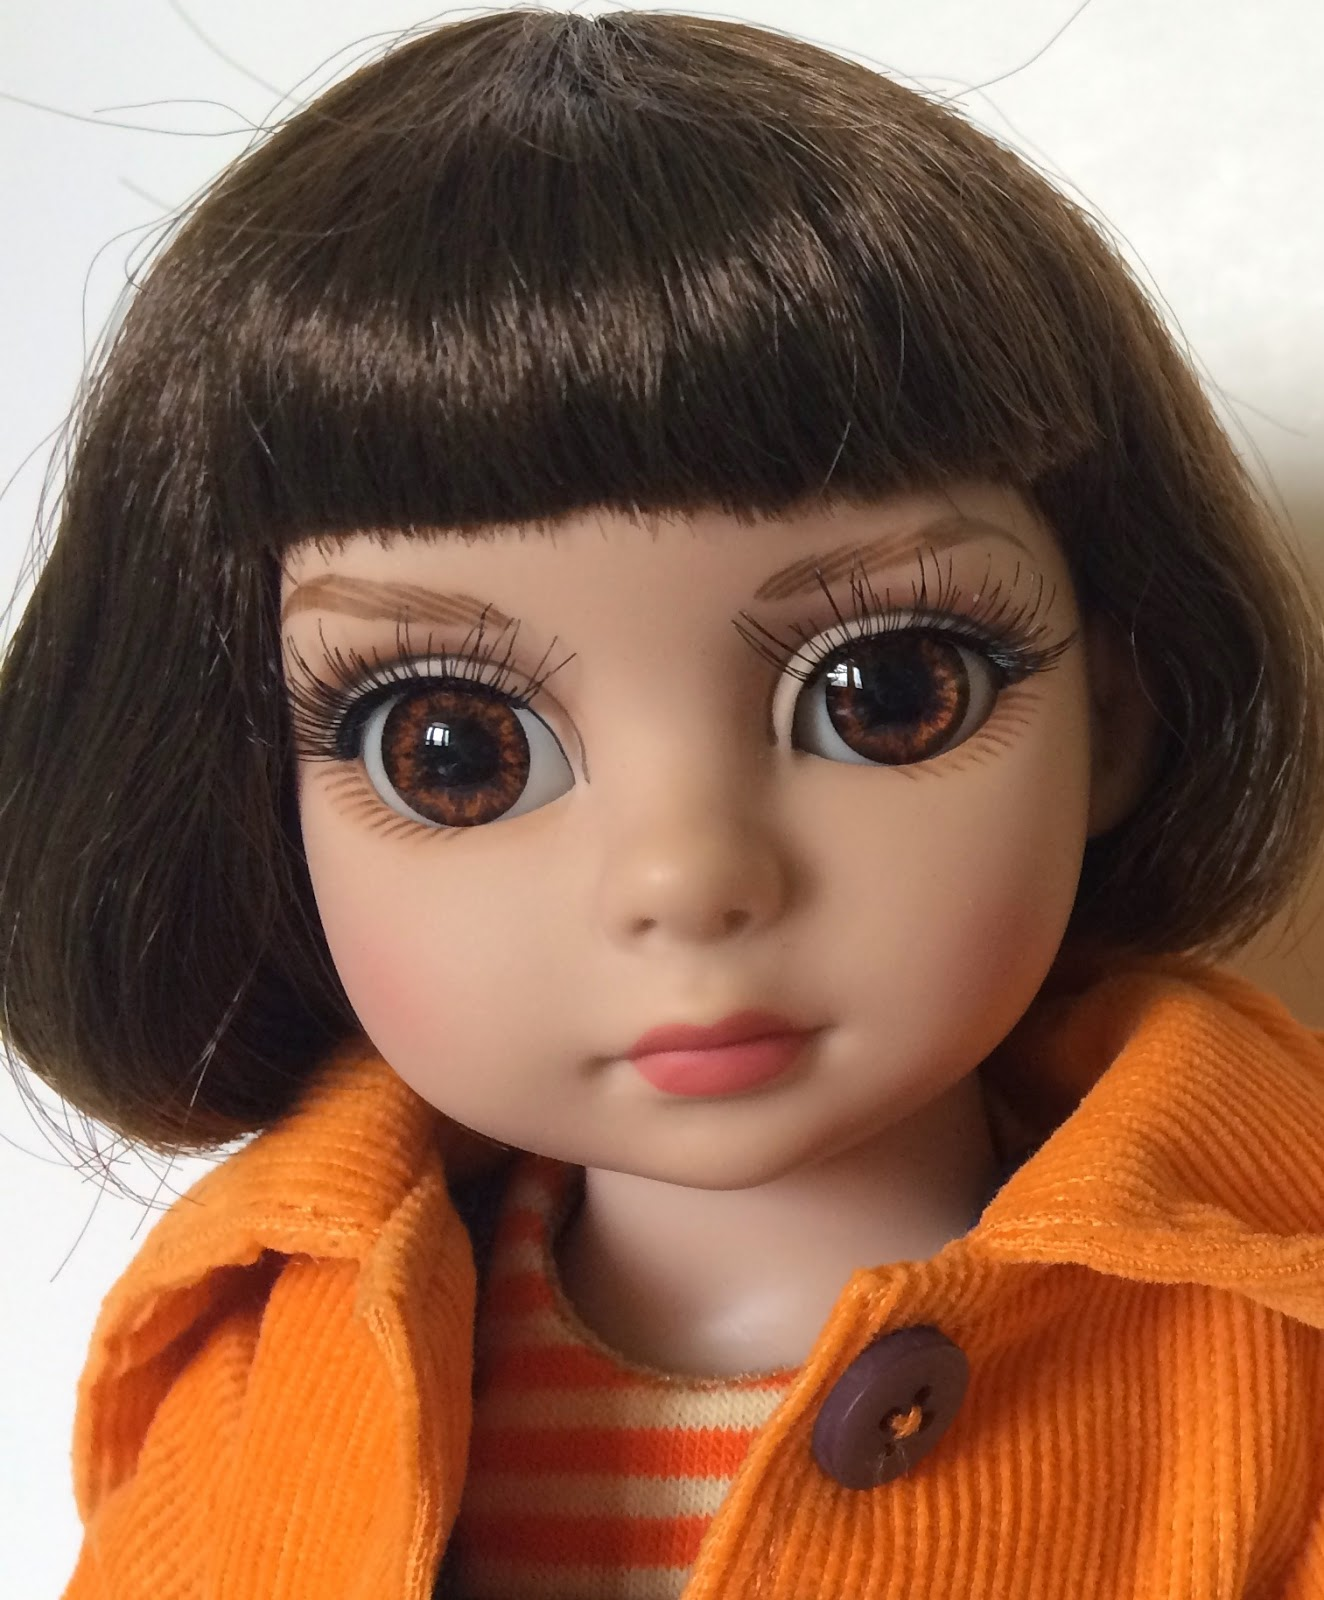 Meet-Patsy,-A-New-Tonner-Effanbee-Doll